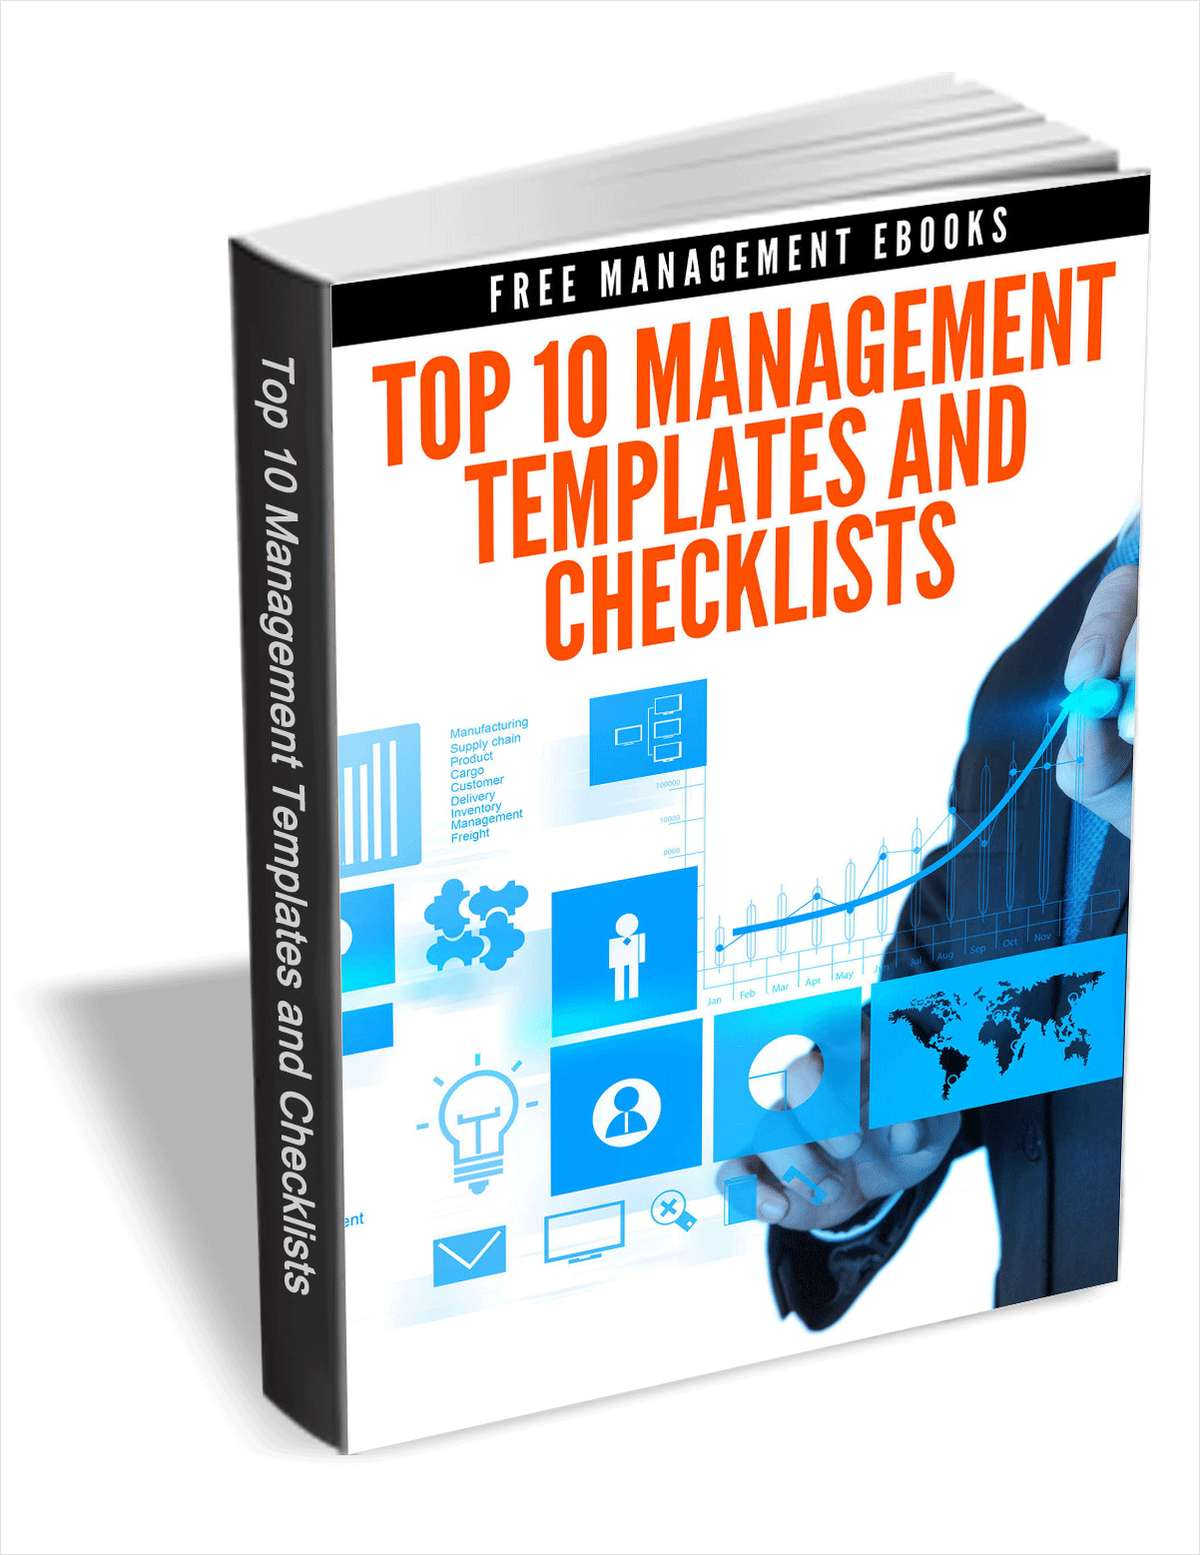 Top 10 Management Templates and Checklists